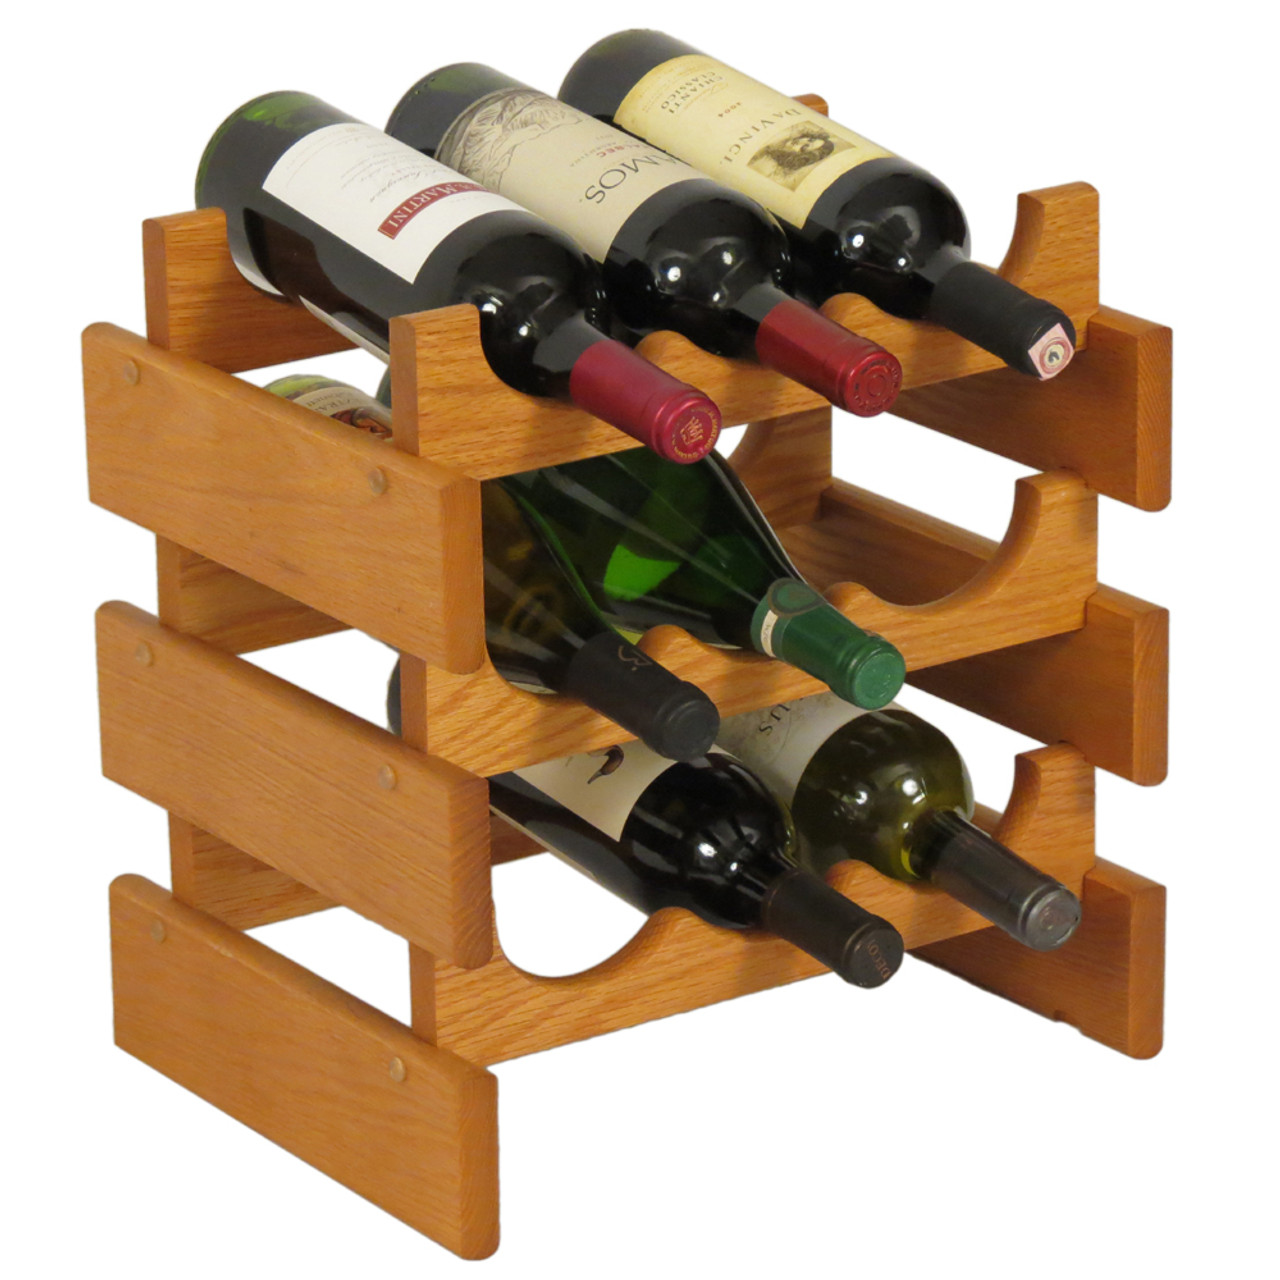 Wooden Bottle Rack Wooden Mallet Wr33 Dakota 9 Bottle Wine Rack